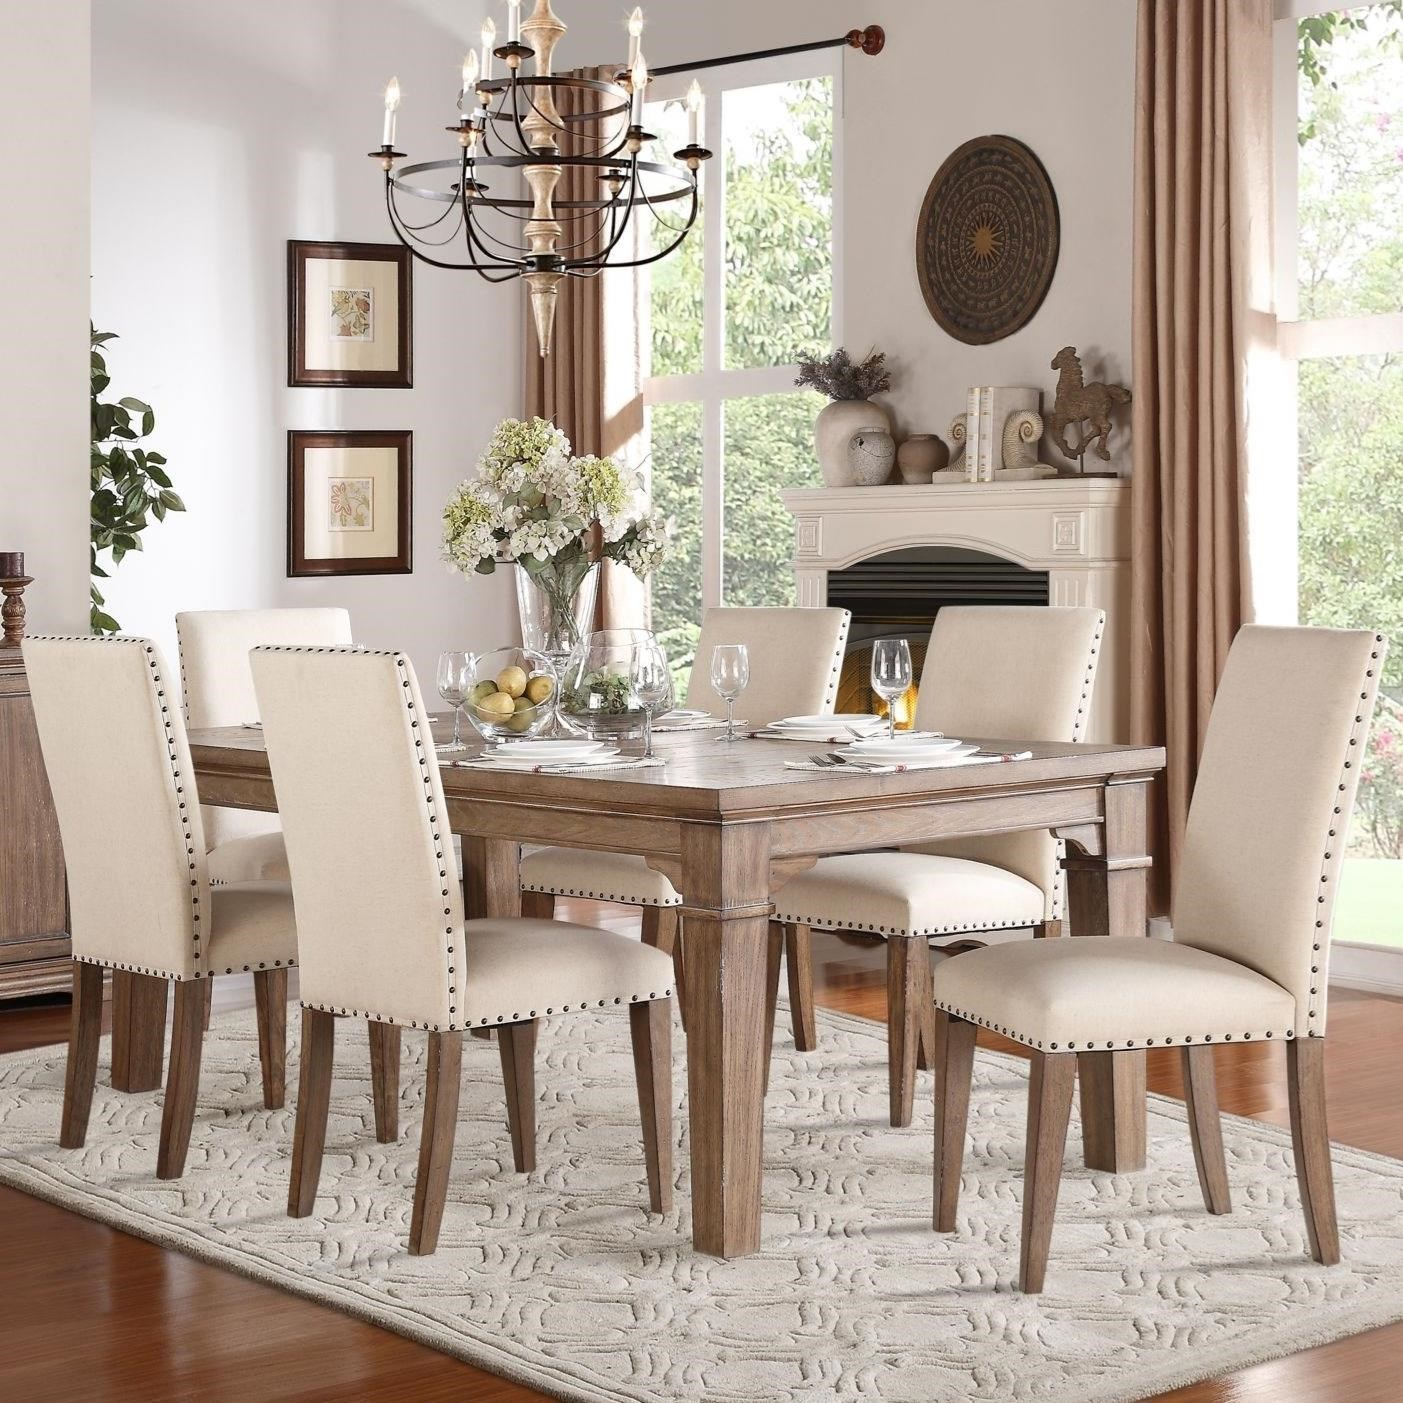 Mill Valley Relaxed Vintage Dining Table and Chair Set with Nailhead Trim on Chairs by Homelegance  sc 1 st  Becku0027s Furniture & Homelegance Mill Valley Relaxed Vintage Dining Table and Chair Set ...